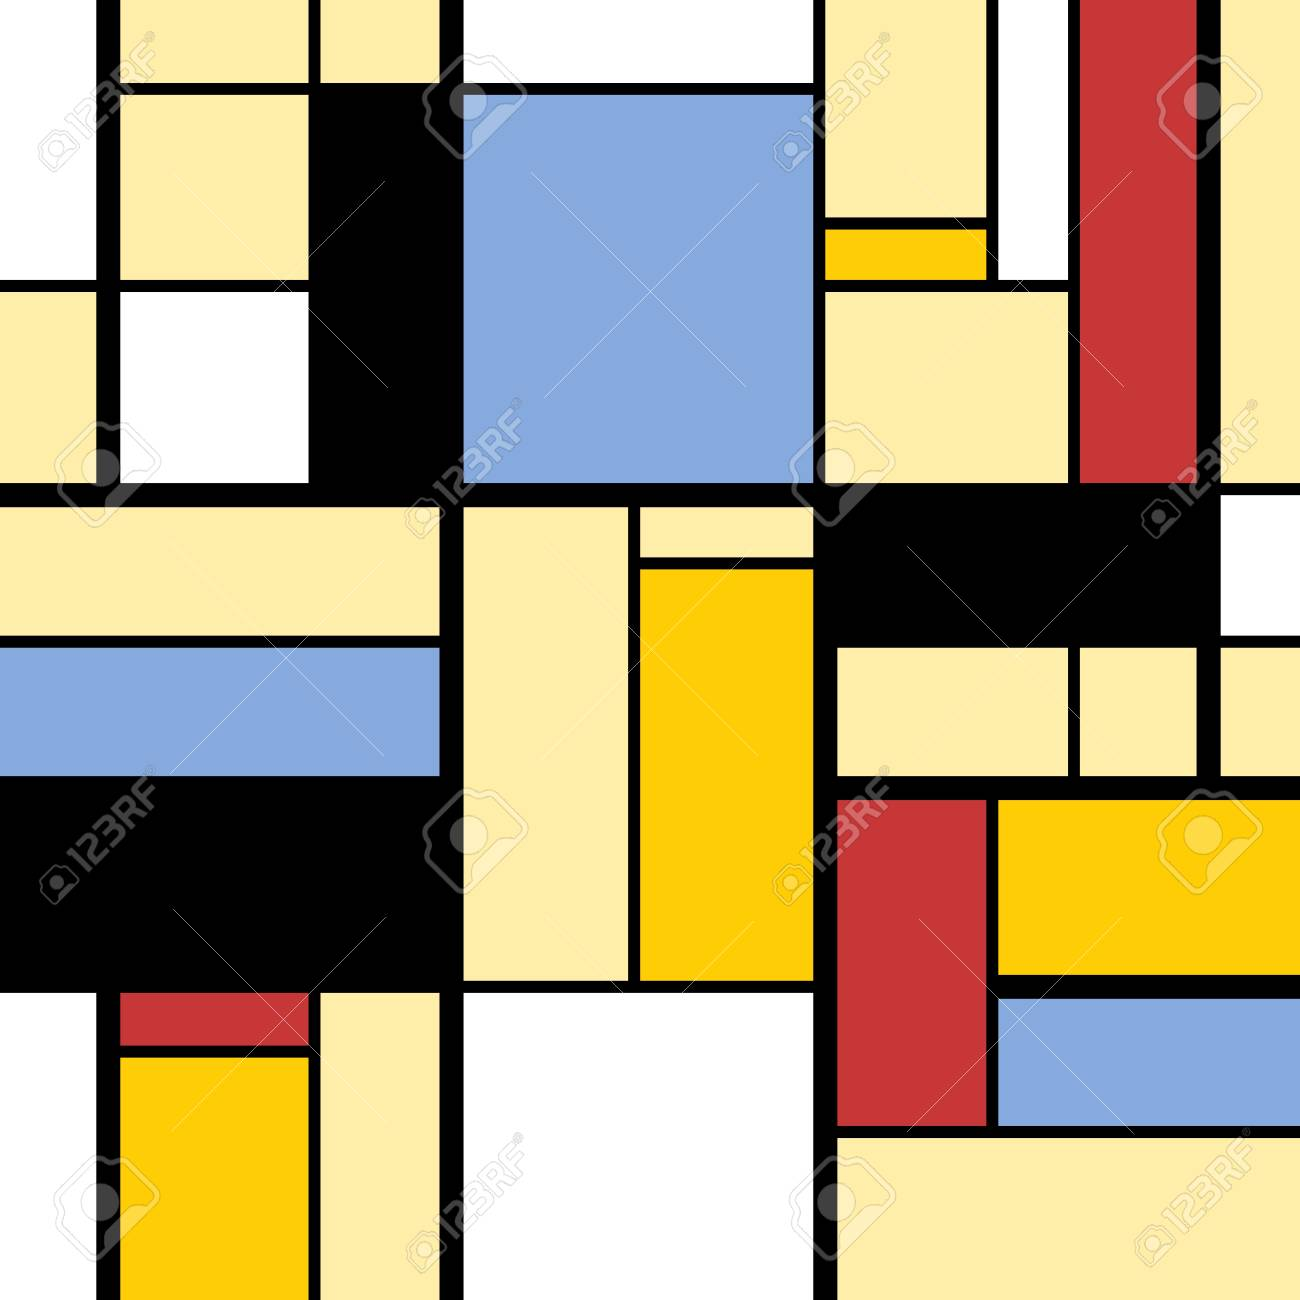 Simple Modern Art Abstract Colorful Squares And Rectangles